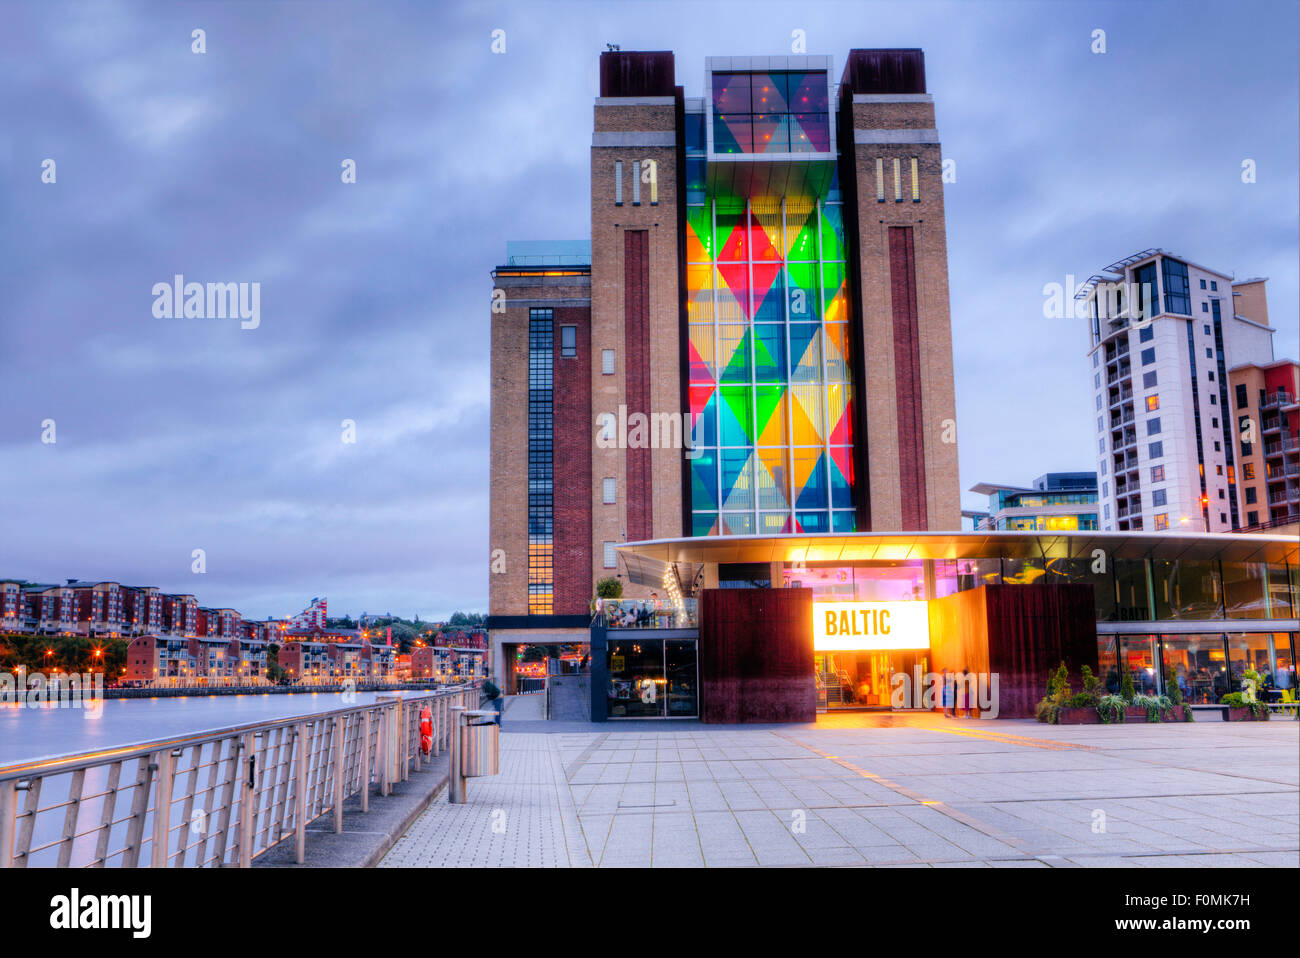 The Baltic Centre for Contemporary Art in Gateshead, Tyne and Wear, England - Stock Image